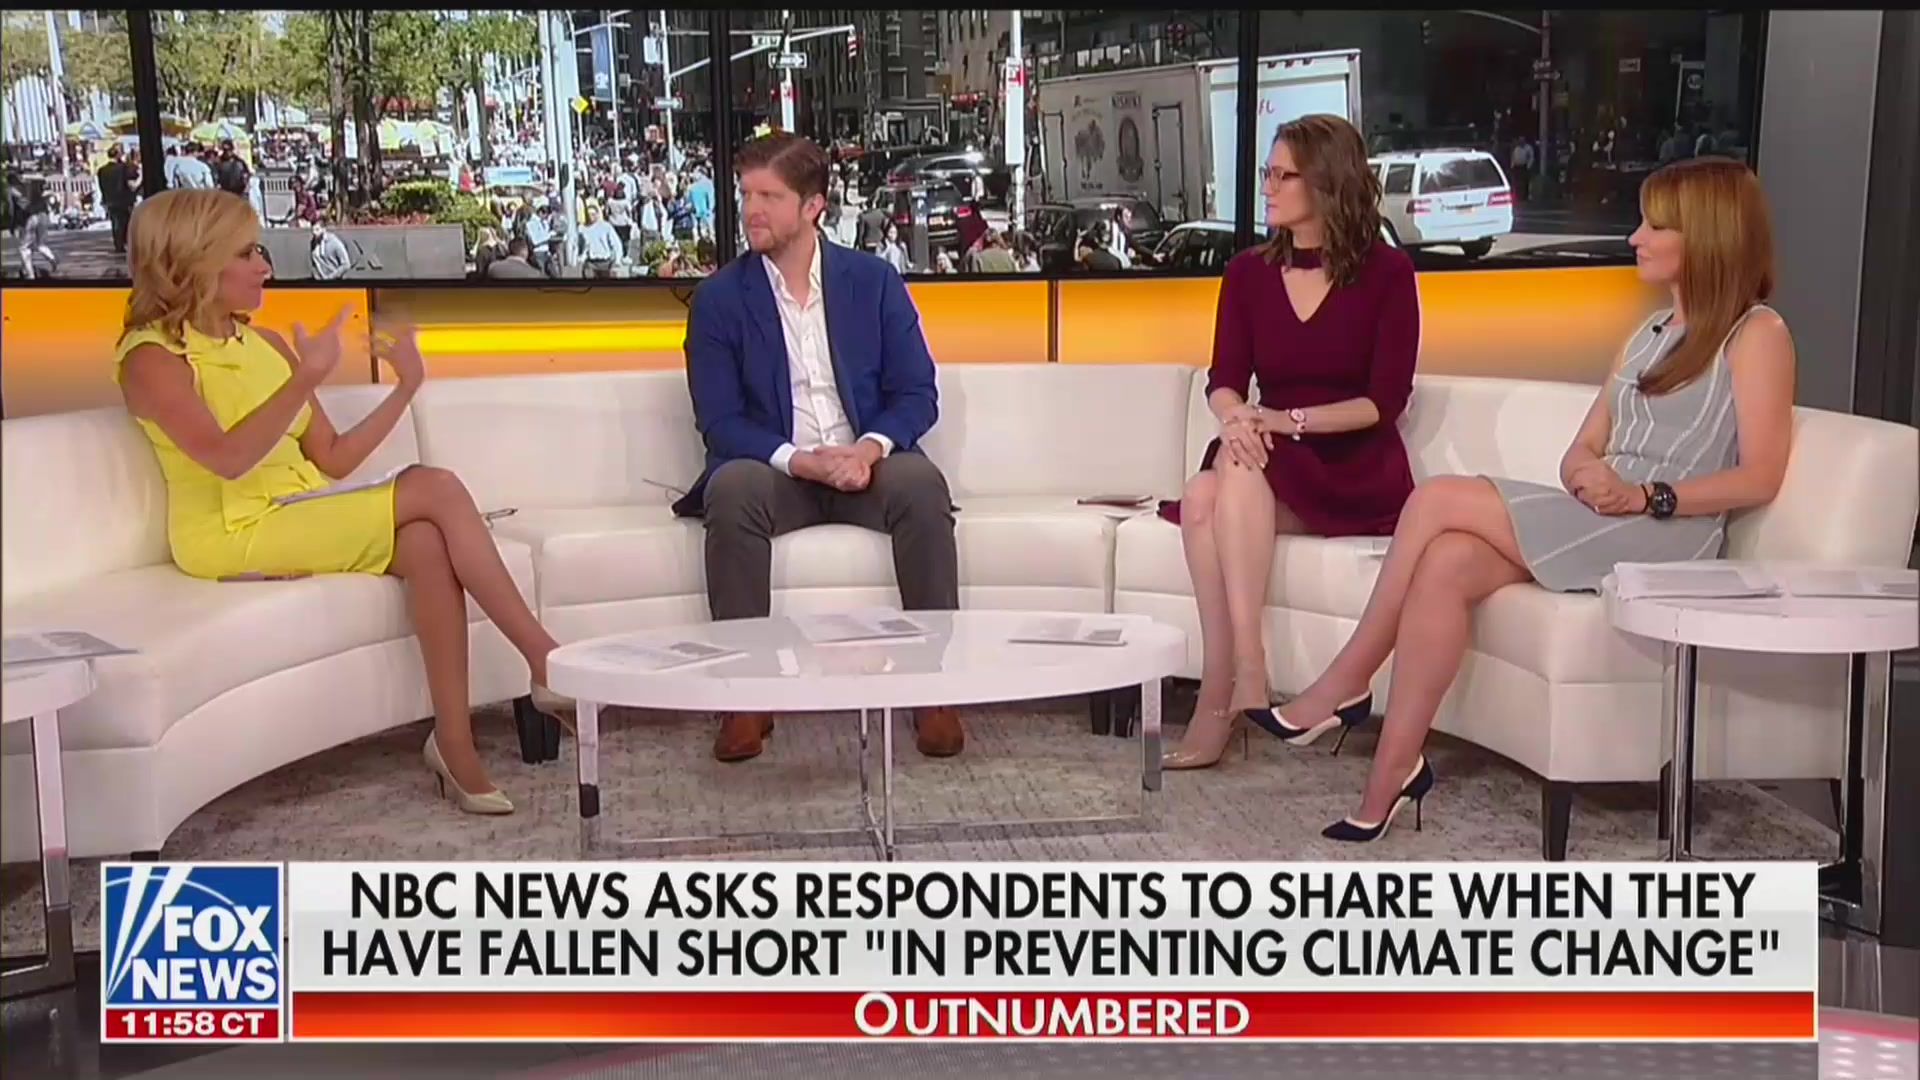 Fox News Hosts Chastise Conservative Pundit for Mocking Greta Thunberg: 'She's a Kid!'